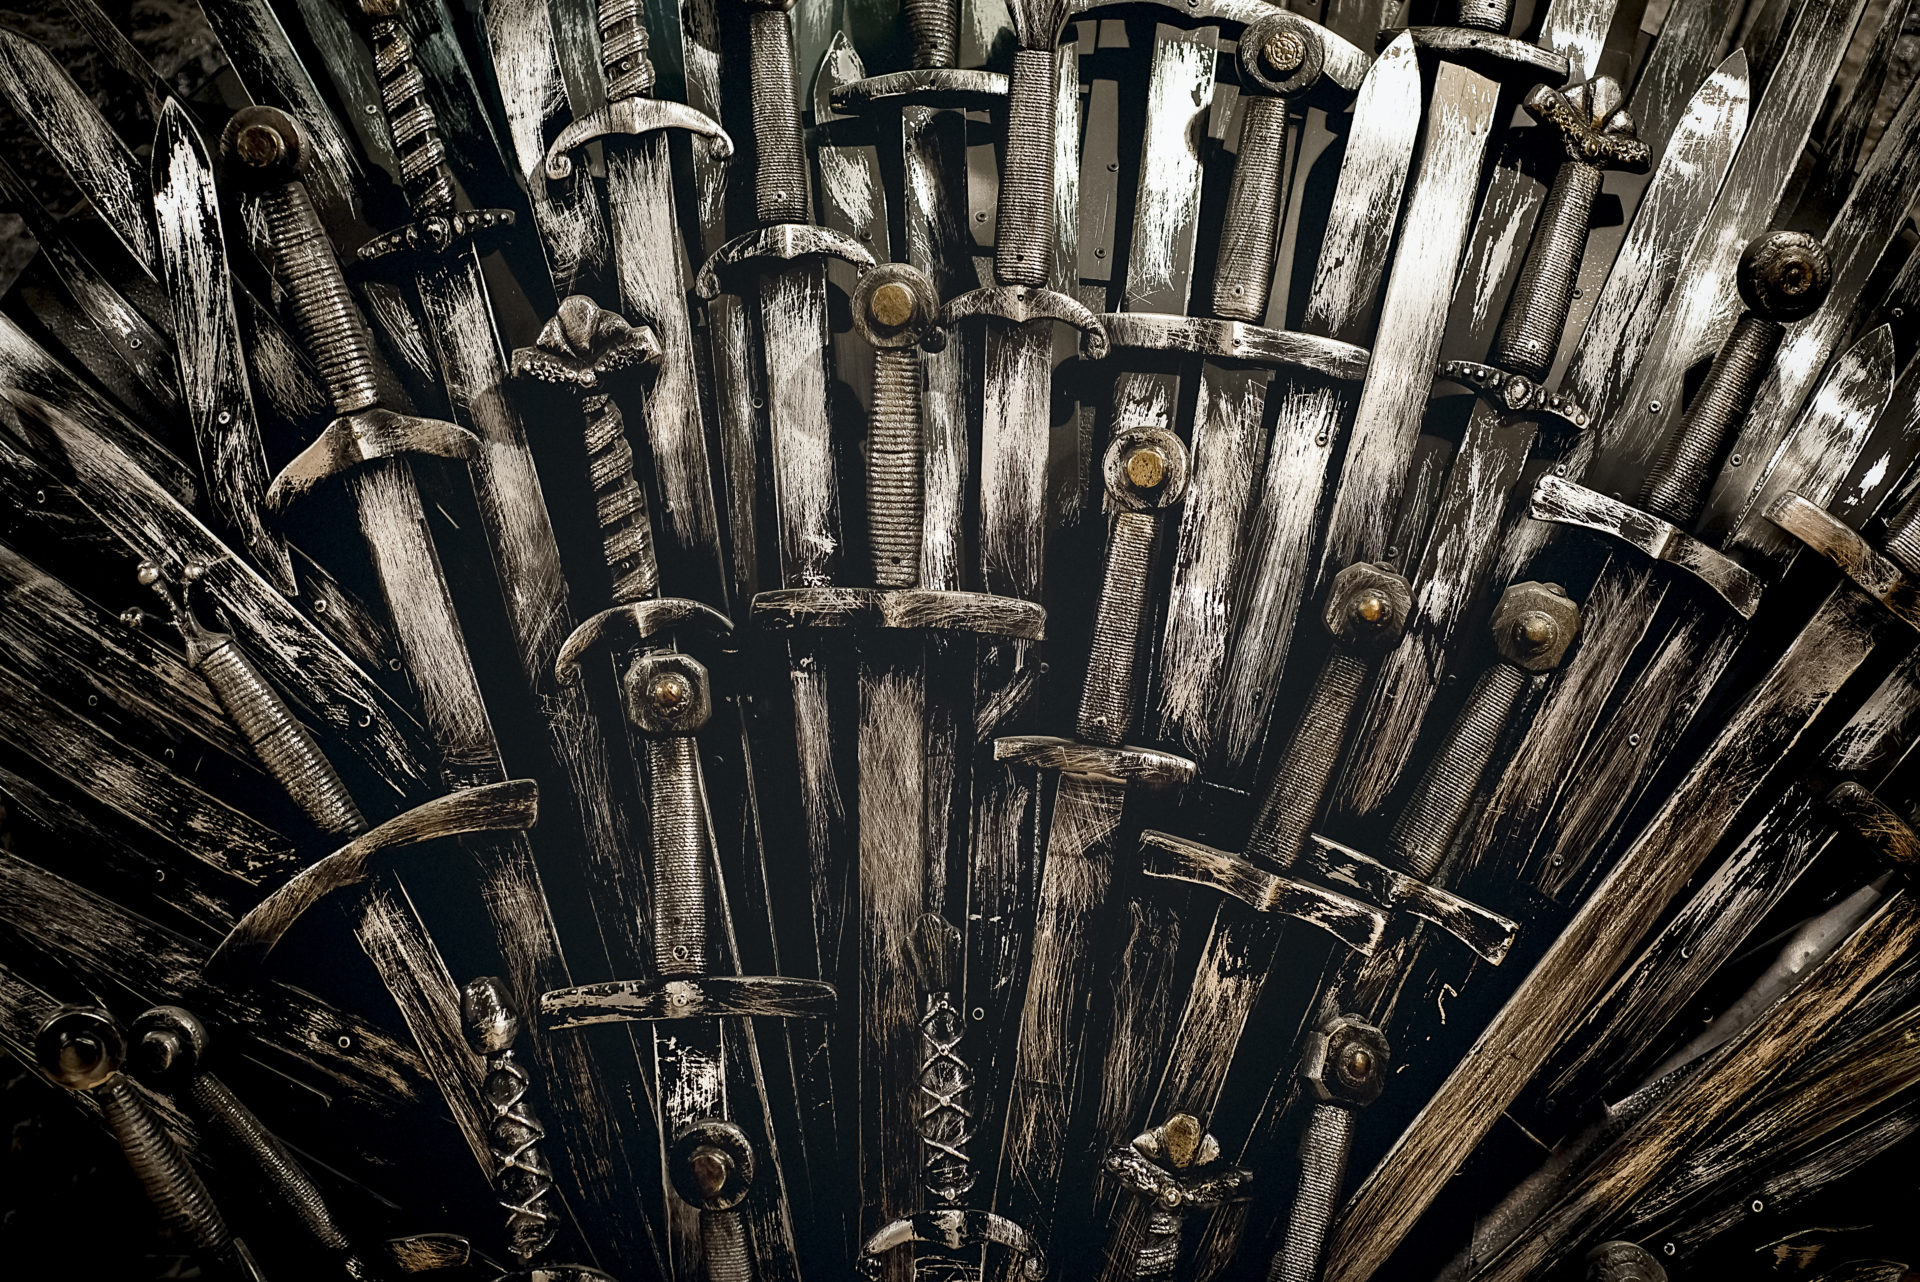 Torrent Game of Thrones at your risk – the file is dark and full of malware